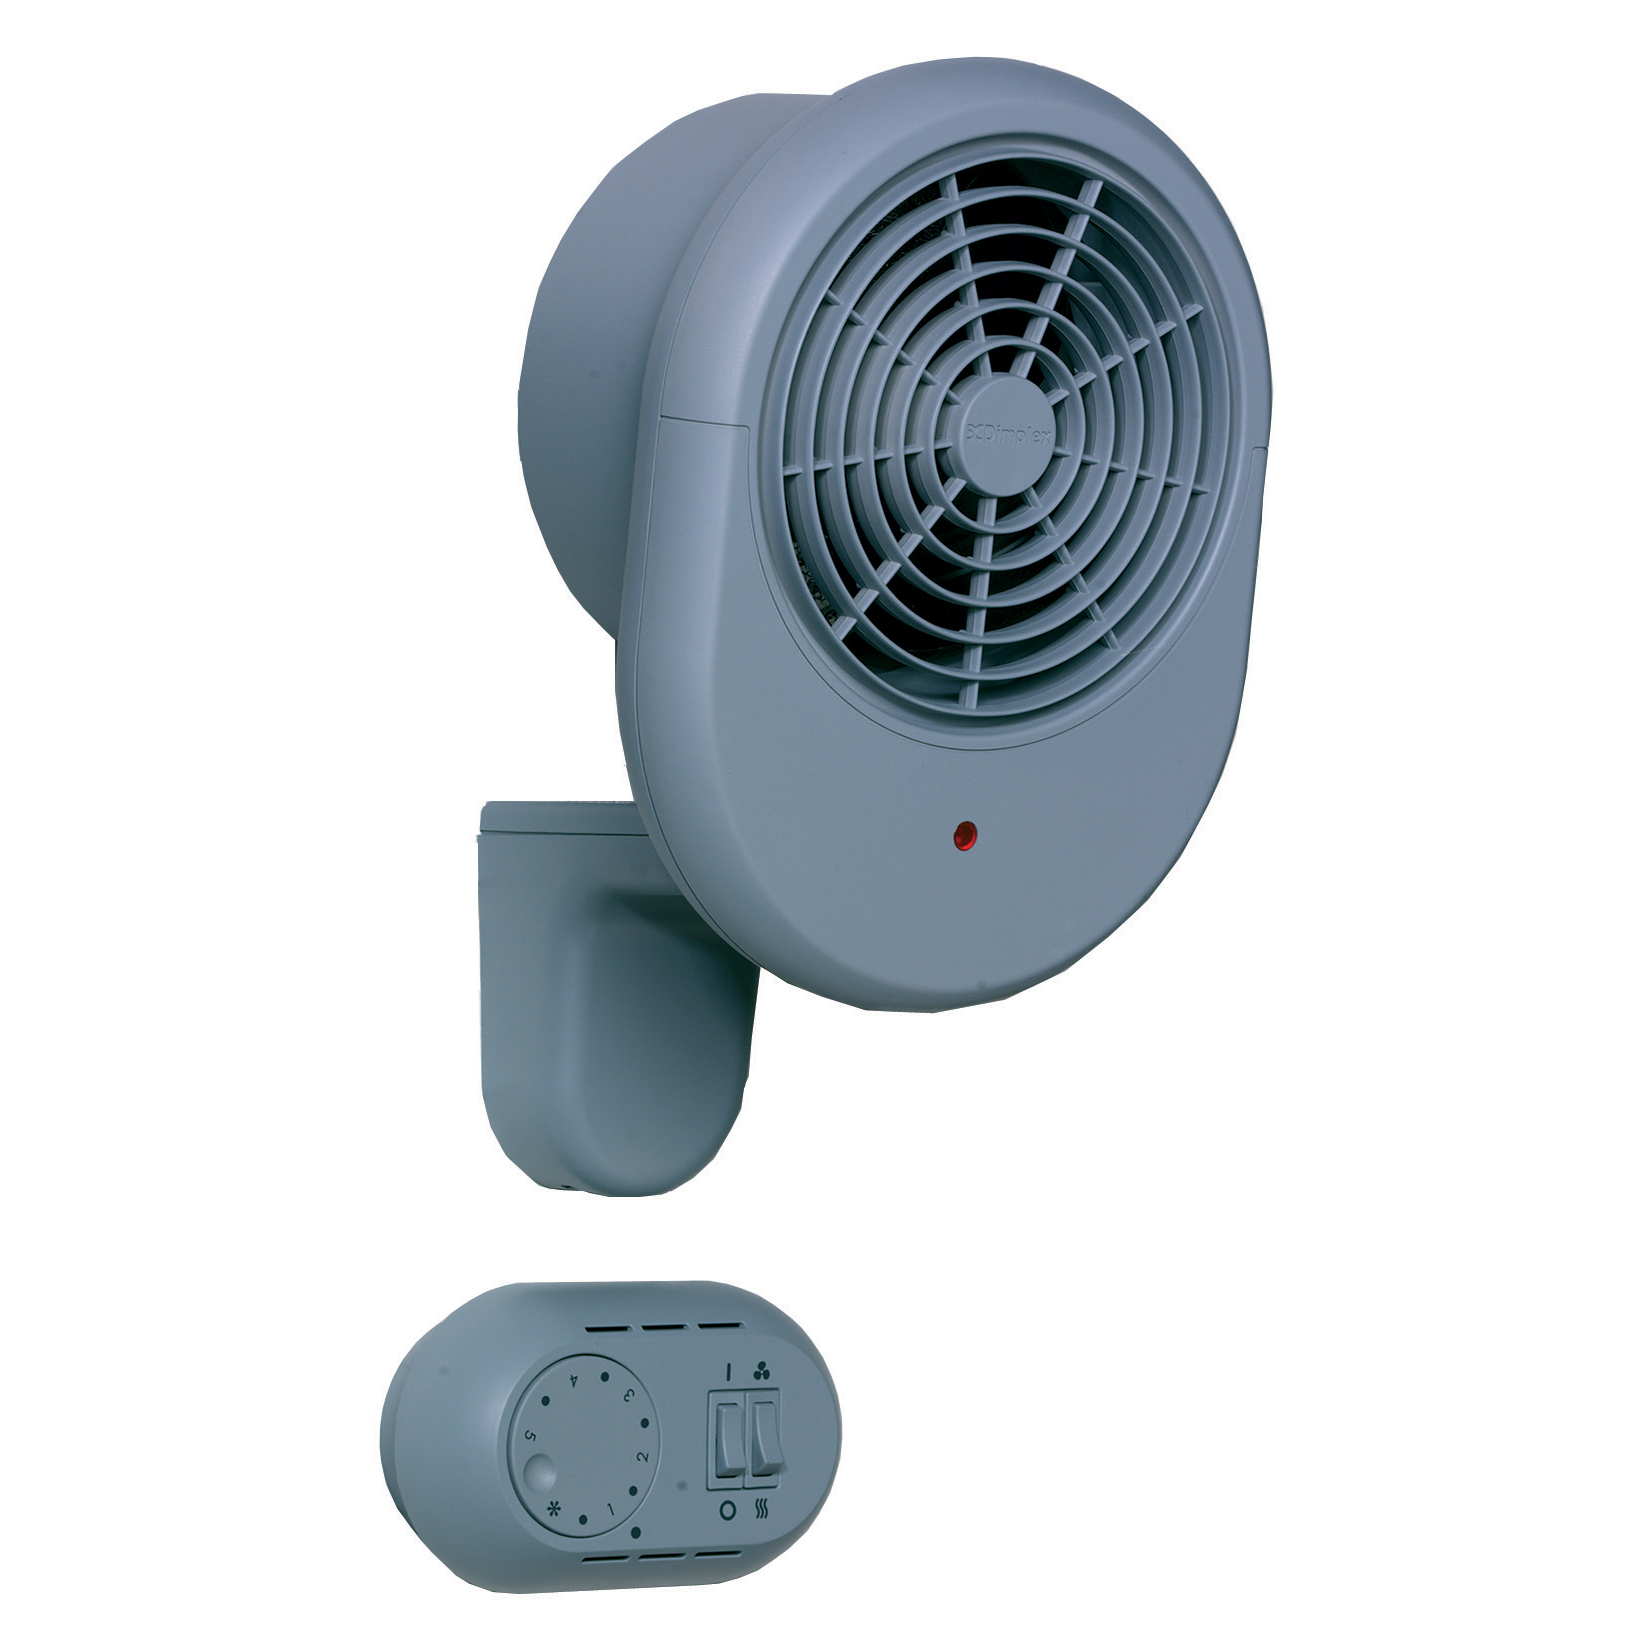 Dimplex PFH30R Wall Fan Heater 3kW